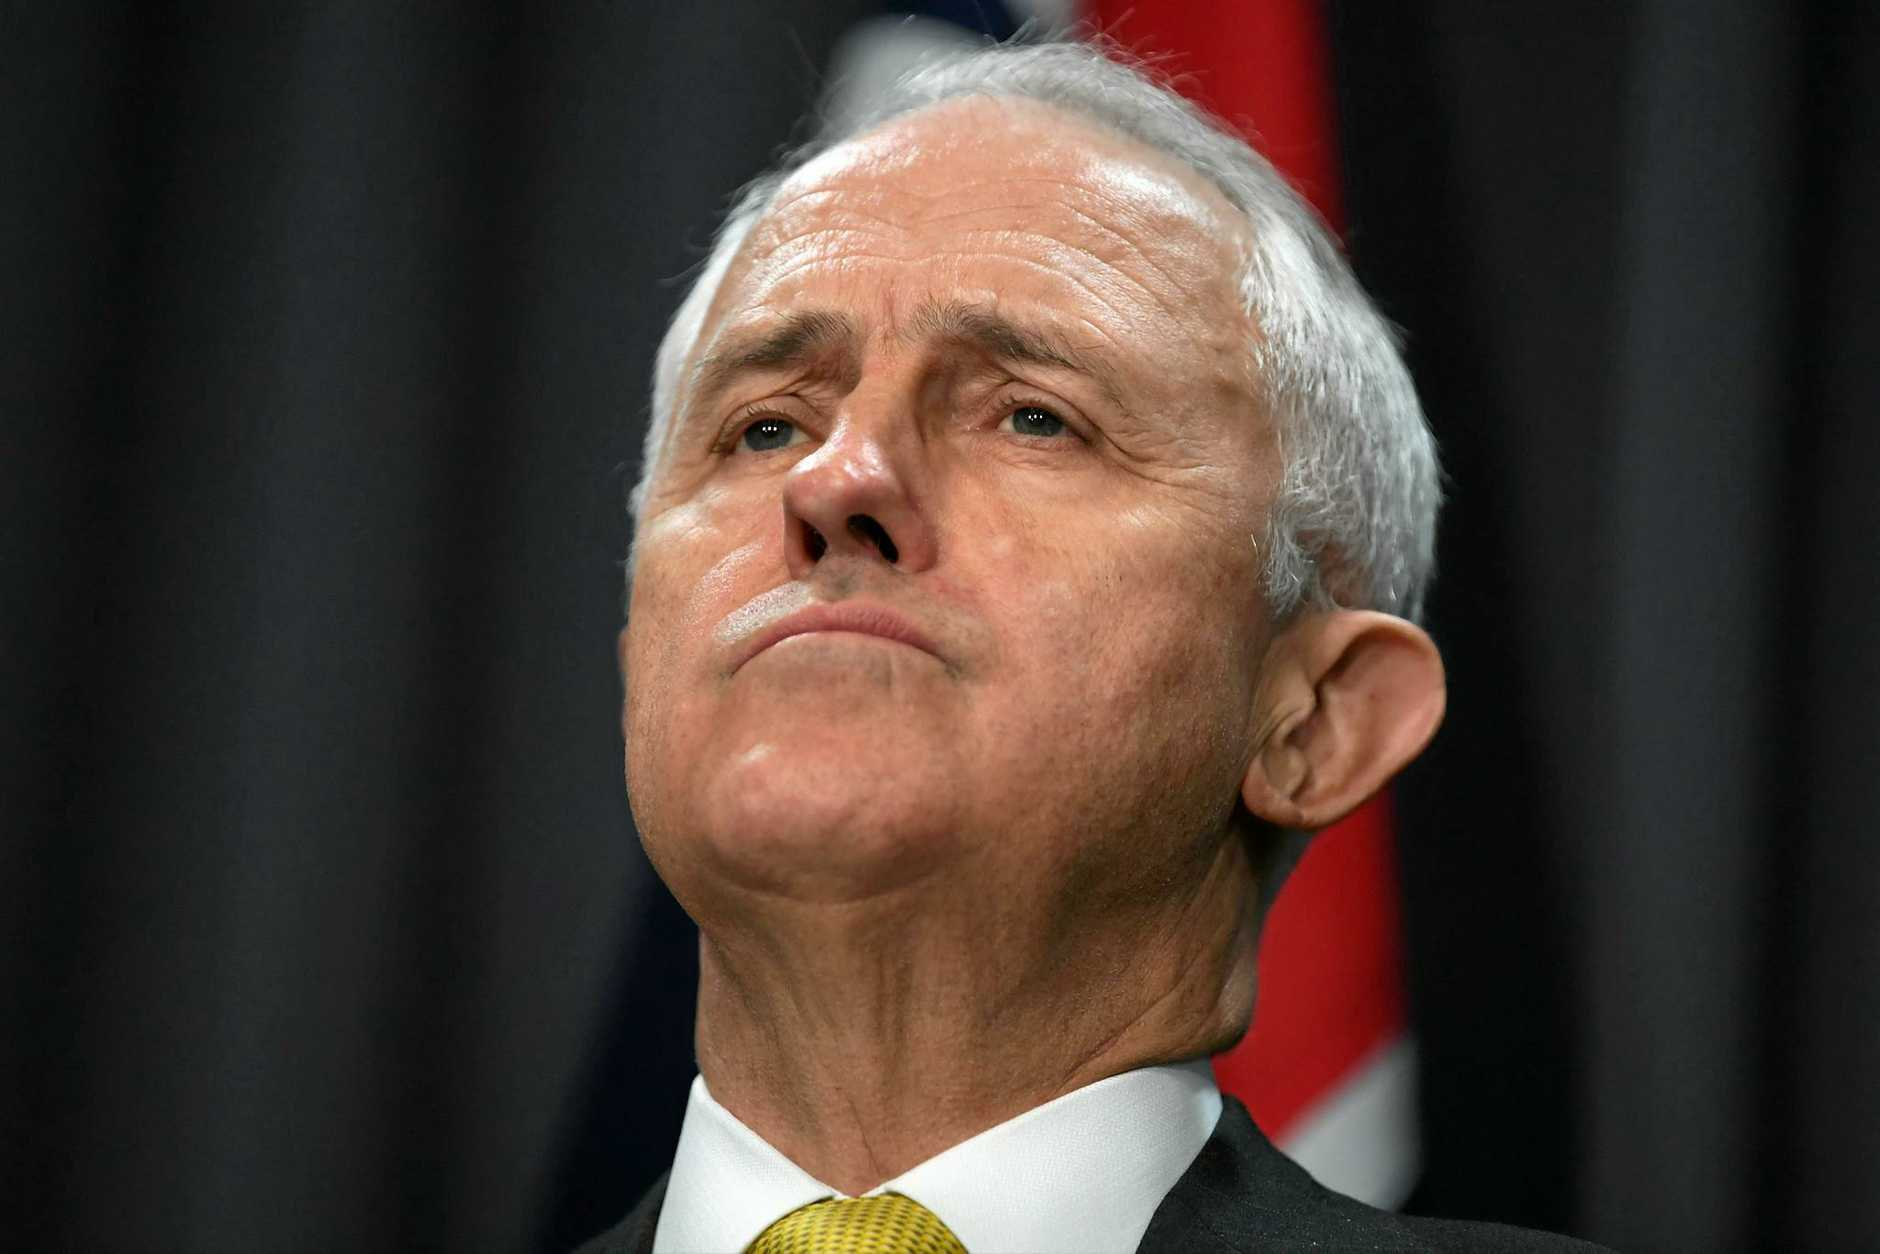 Grilled on radio, Malcolm Turnbull has acknowledged people will often say things that are